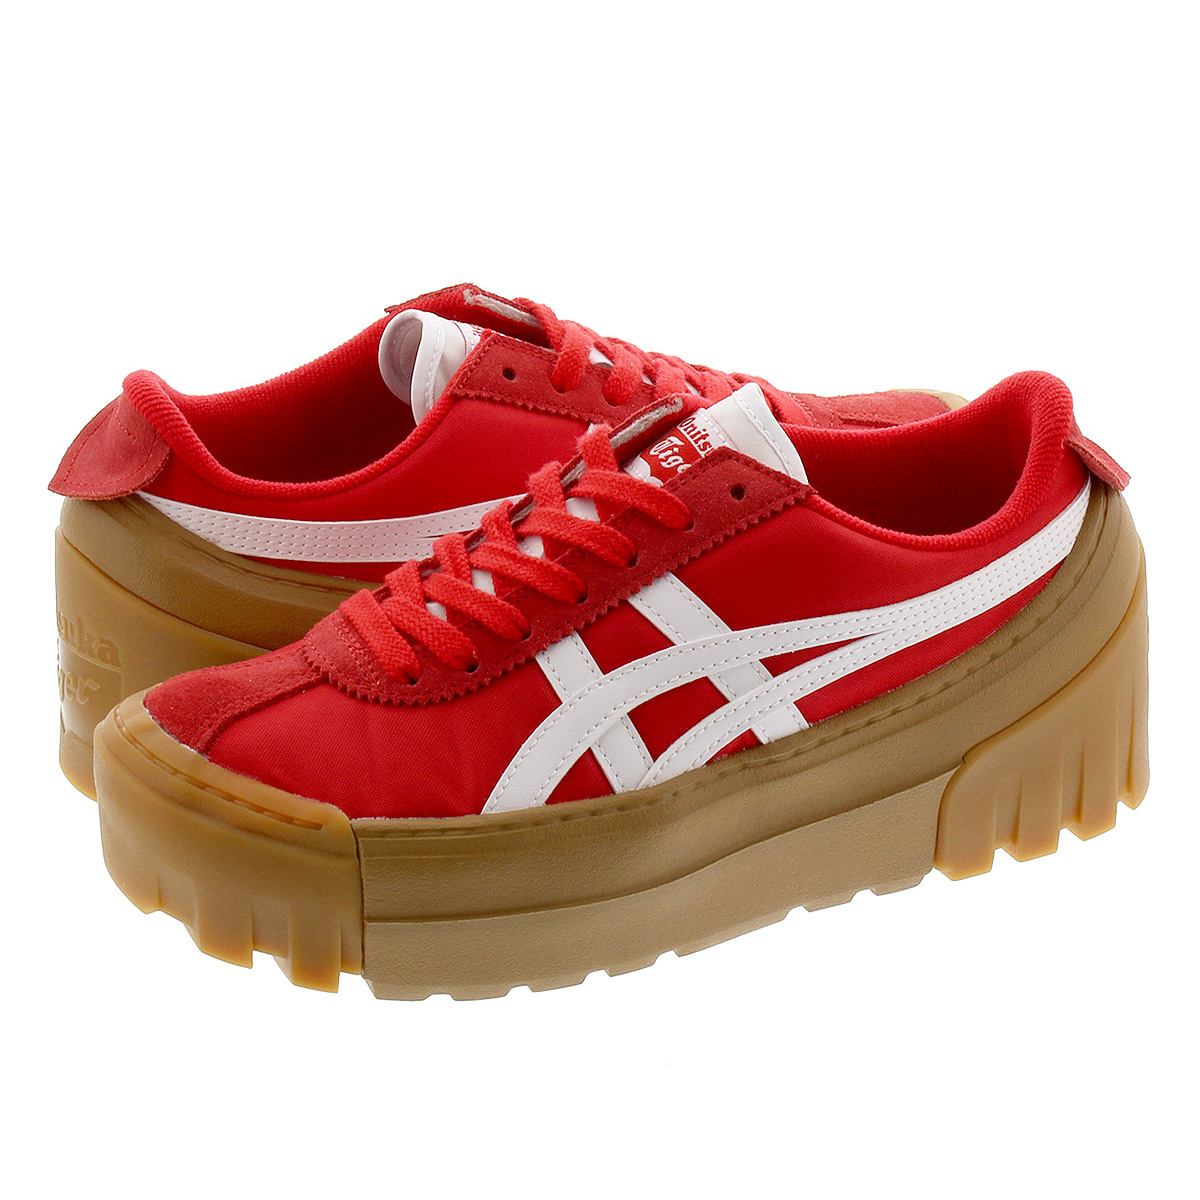 Onitsuka Tiger DELEGATION CHUNK オニツカ タイガー デレゲーション チャンク CLASSIC RED/WHITE 1183a585-602